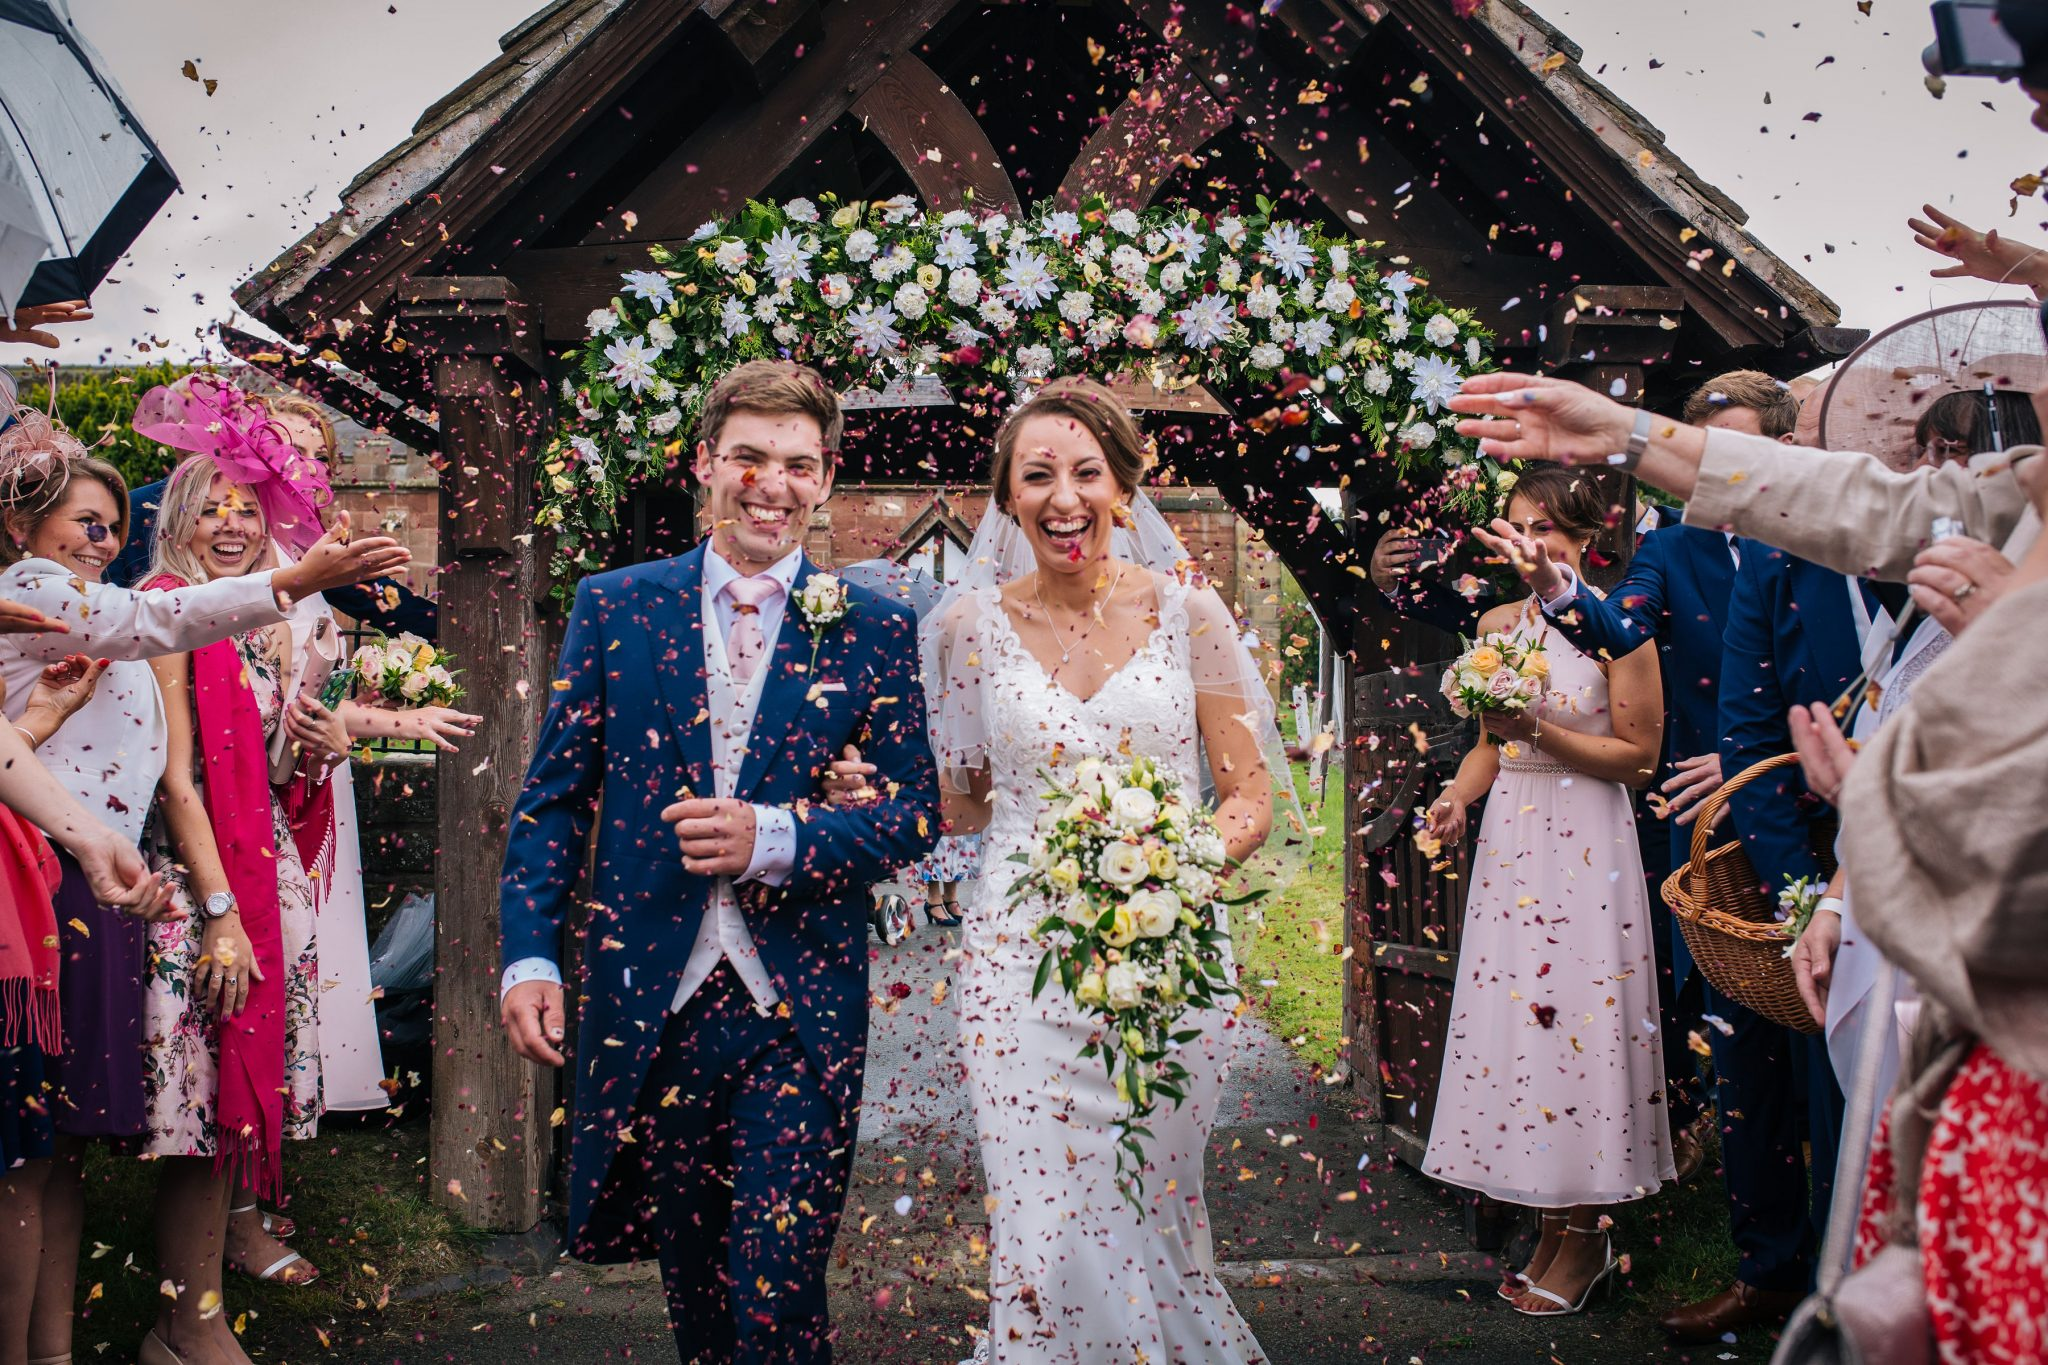 Rural Wedding Confetti photographer by Joanna Eardley